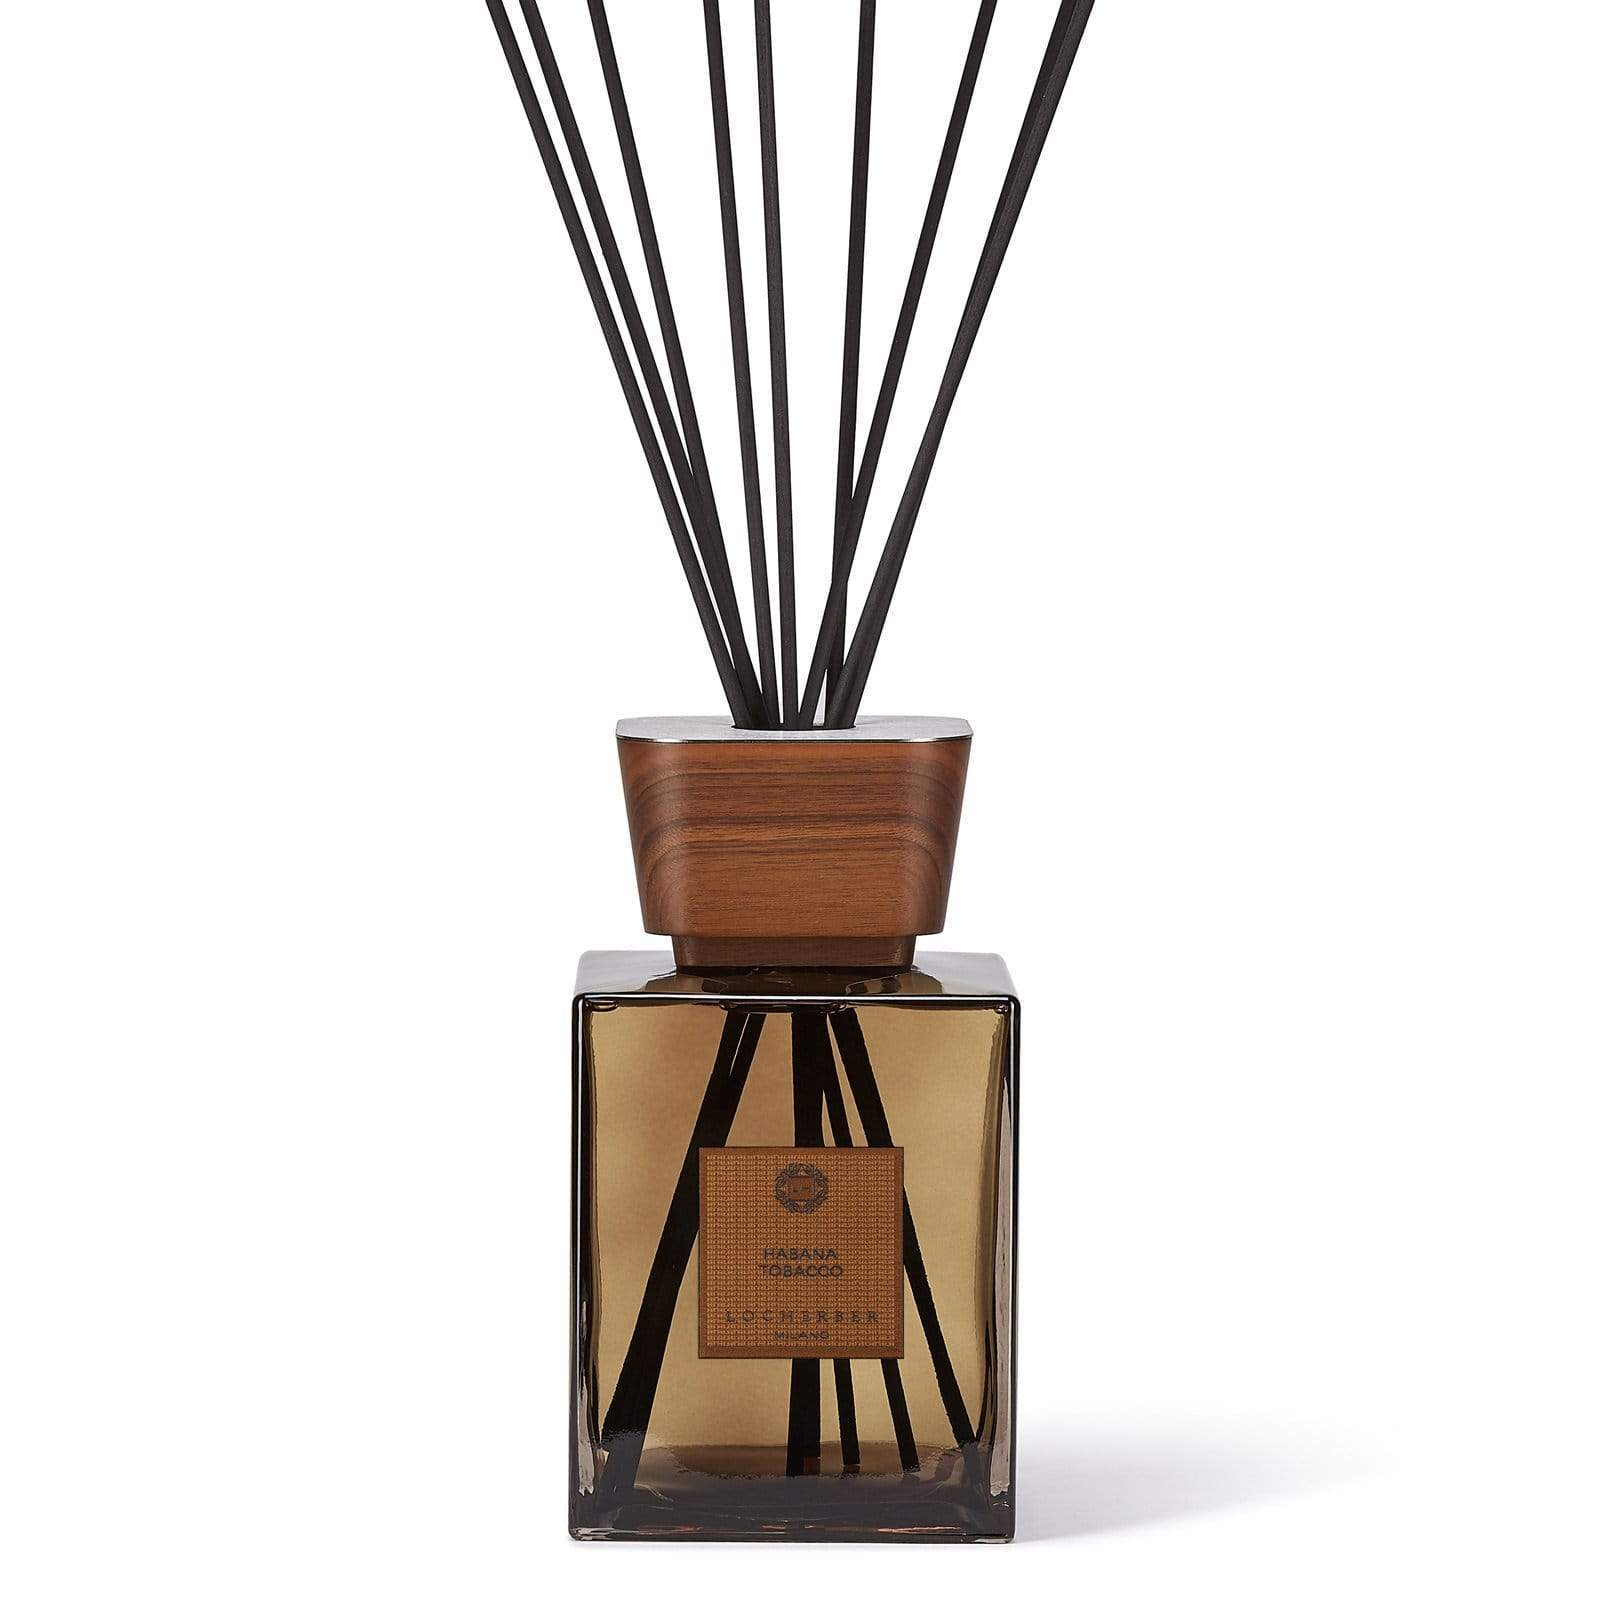 Locherber Milano Home Fragrance 2500ml Habana Tobacco Diffuser (5 Sizes)